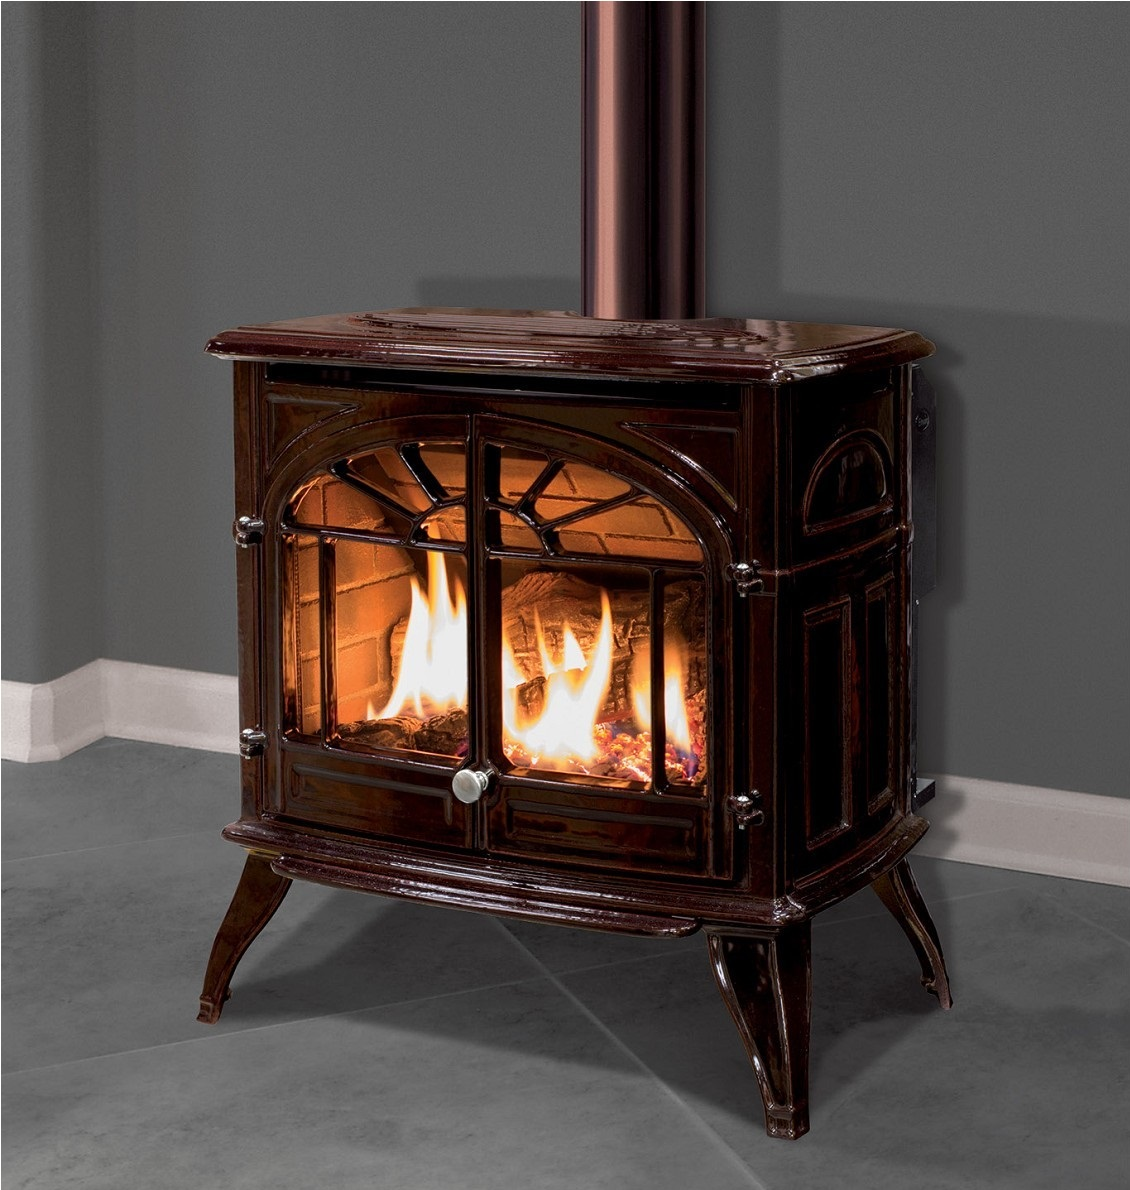 Image of the Westport Gas stove made by Enviro.